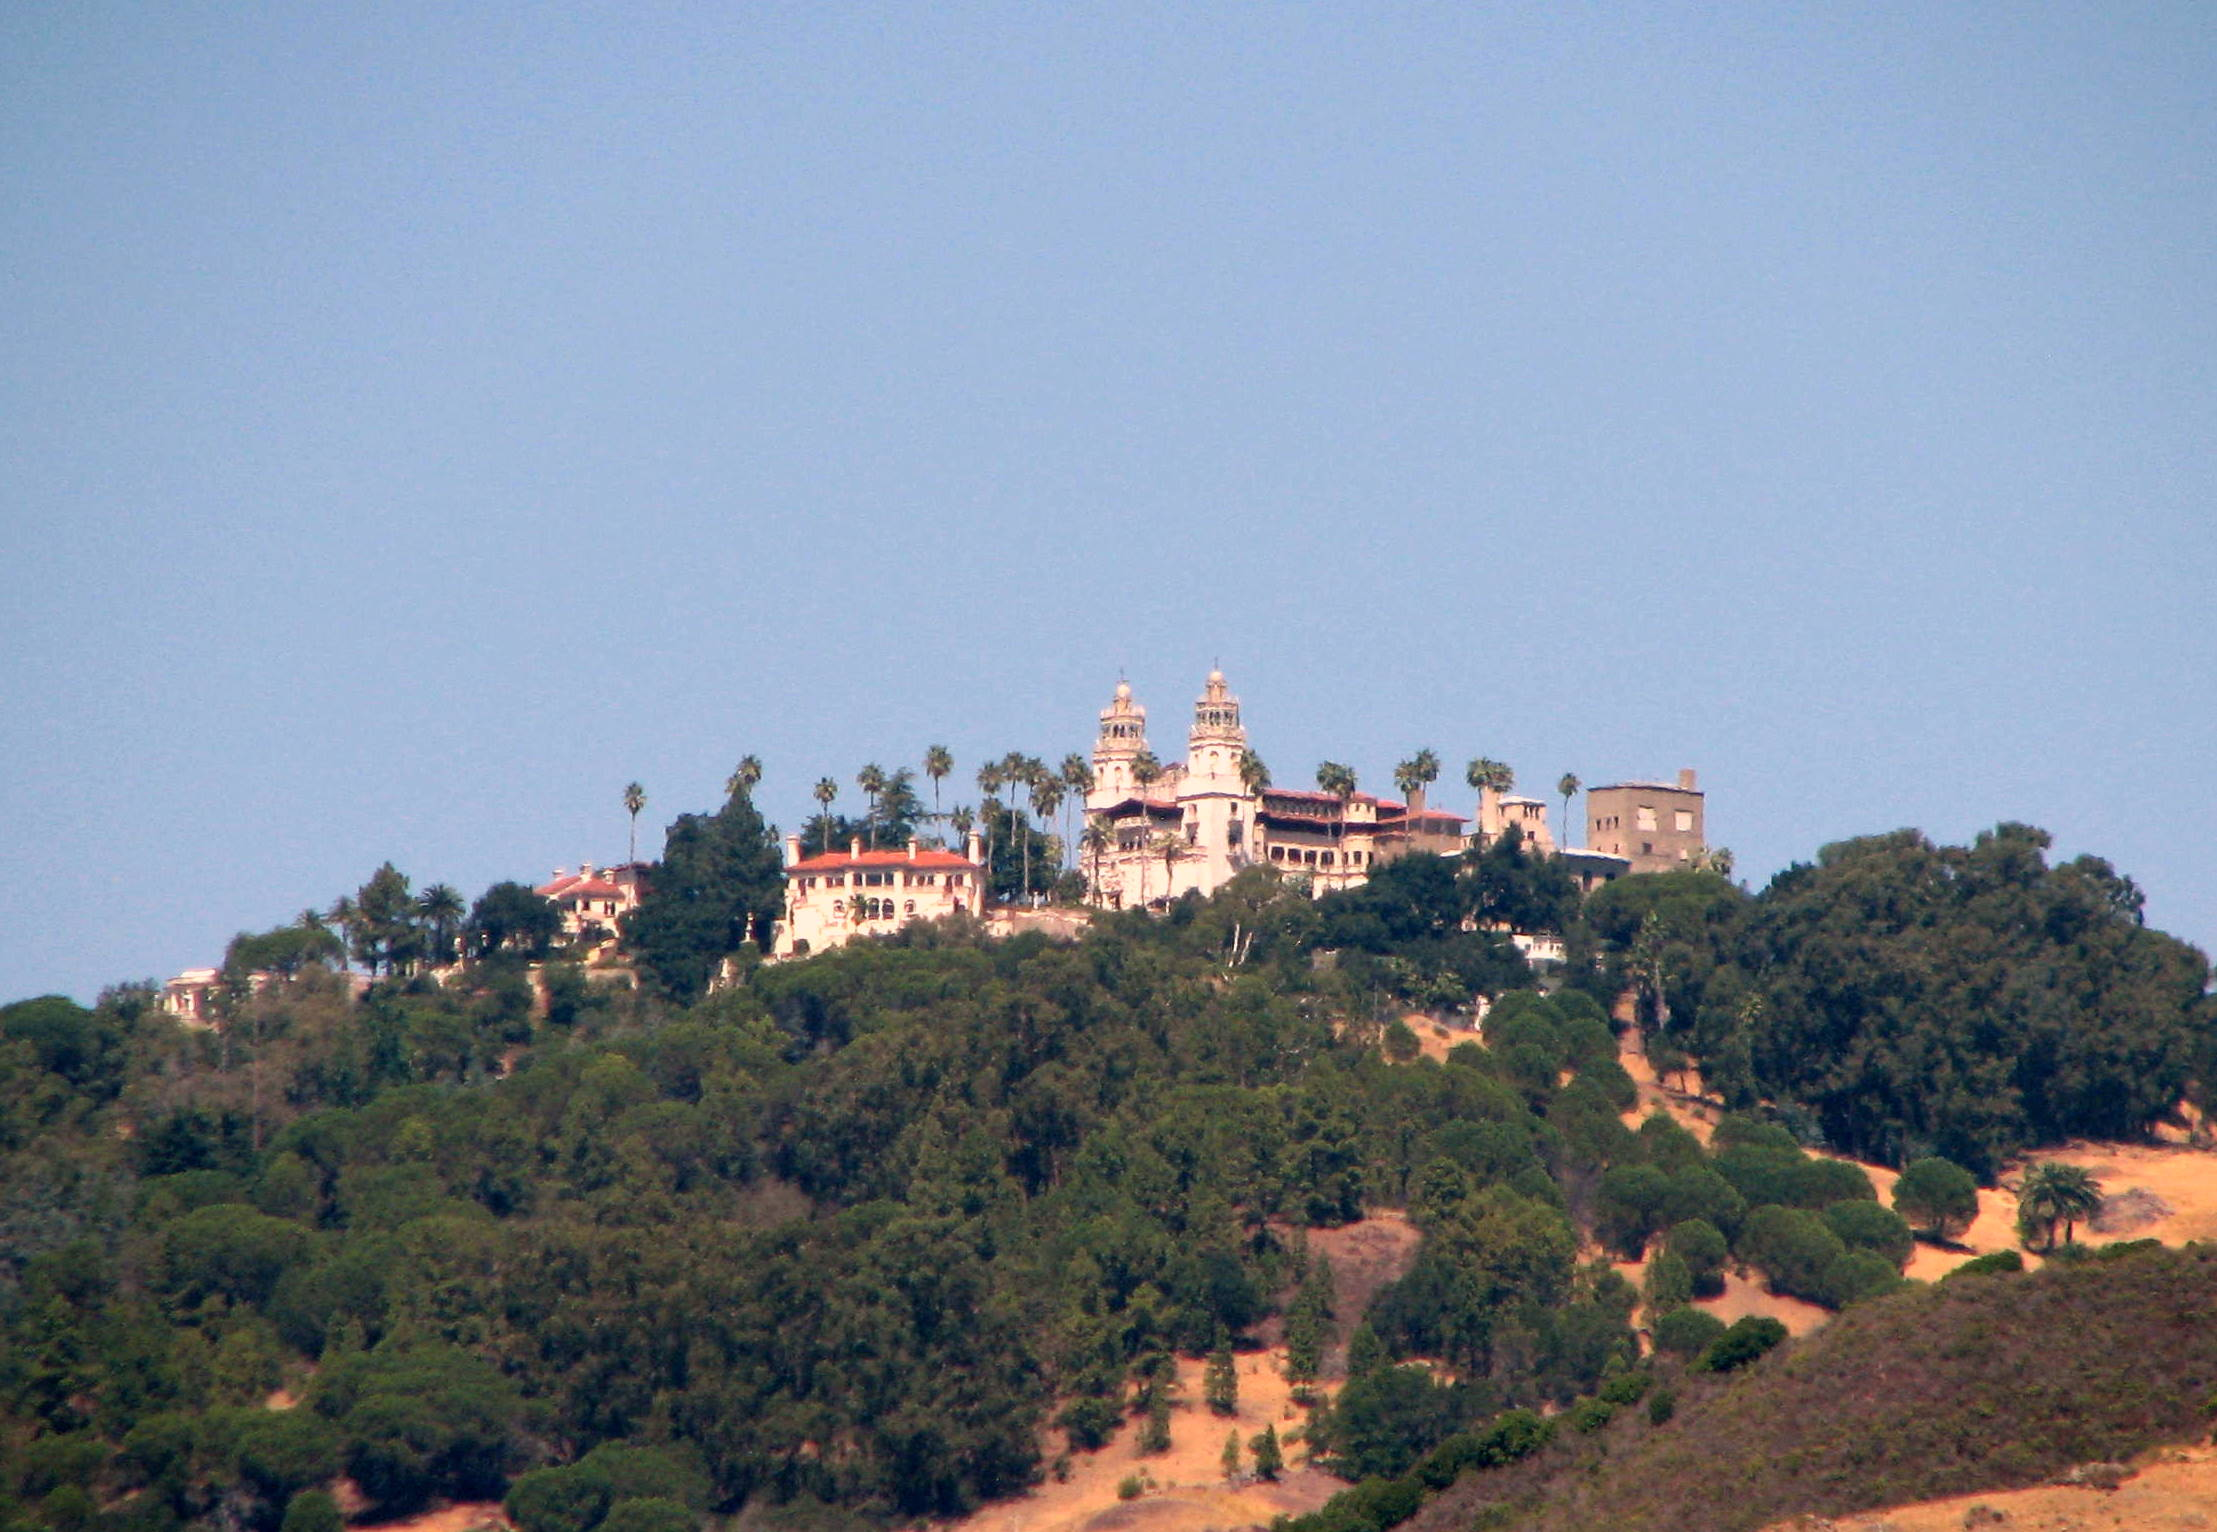 15 Fanciful Facts About the Hearst Castle  Mental Floss